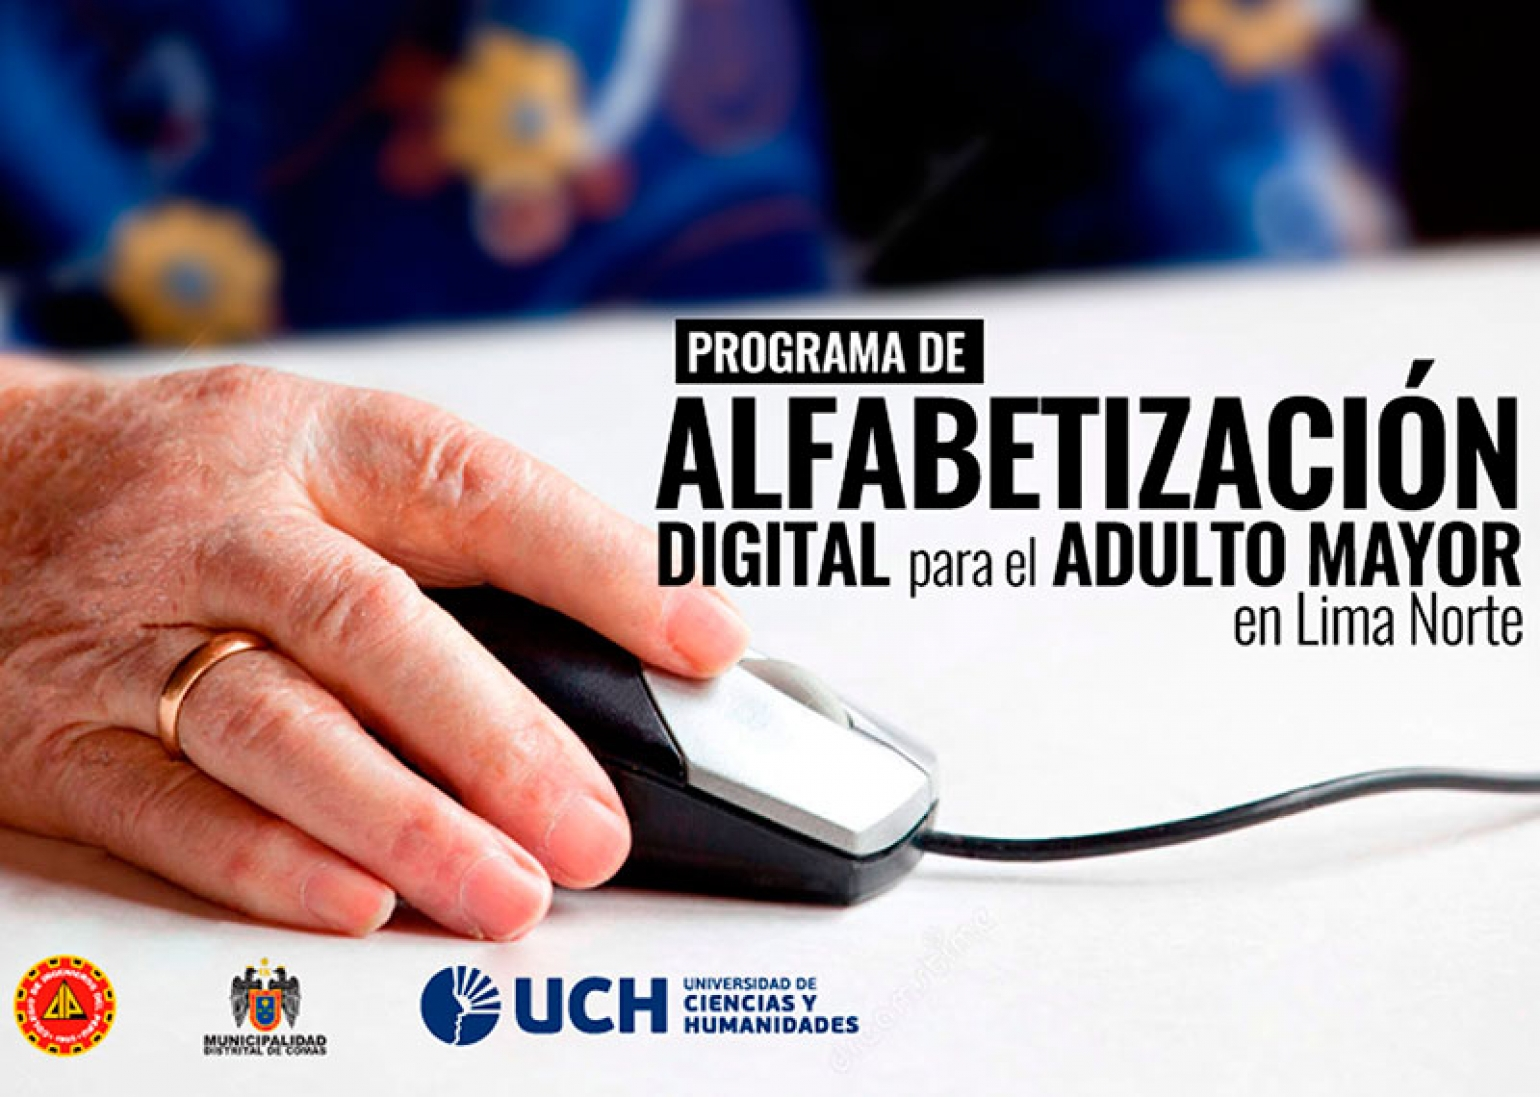 alfabetización digital en el adulto mayor pdf